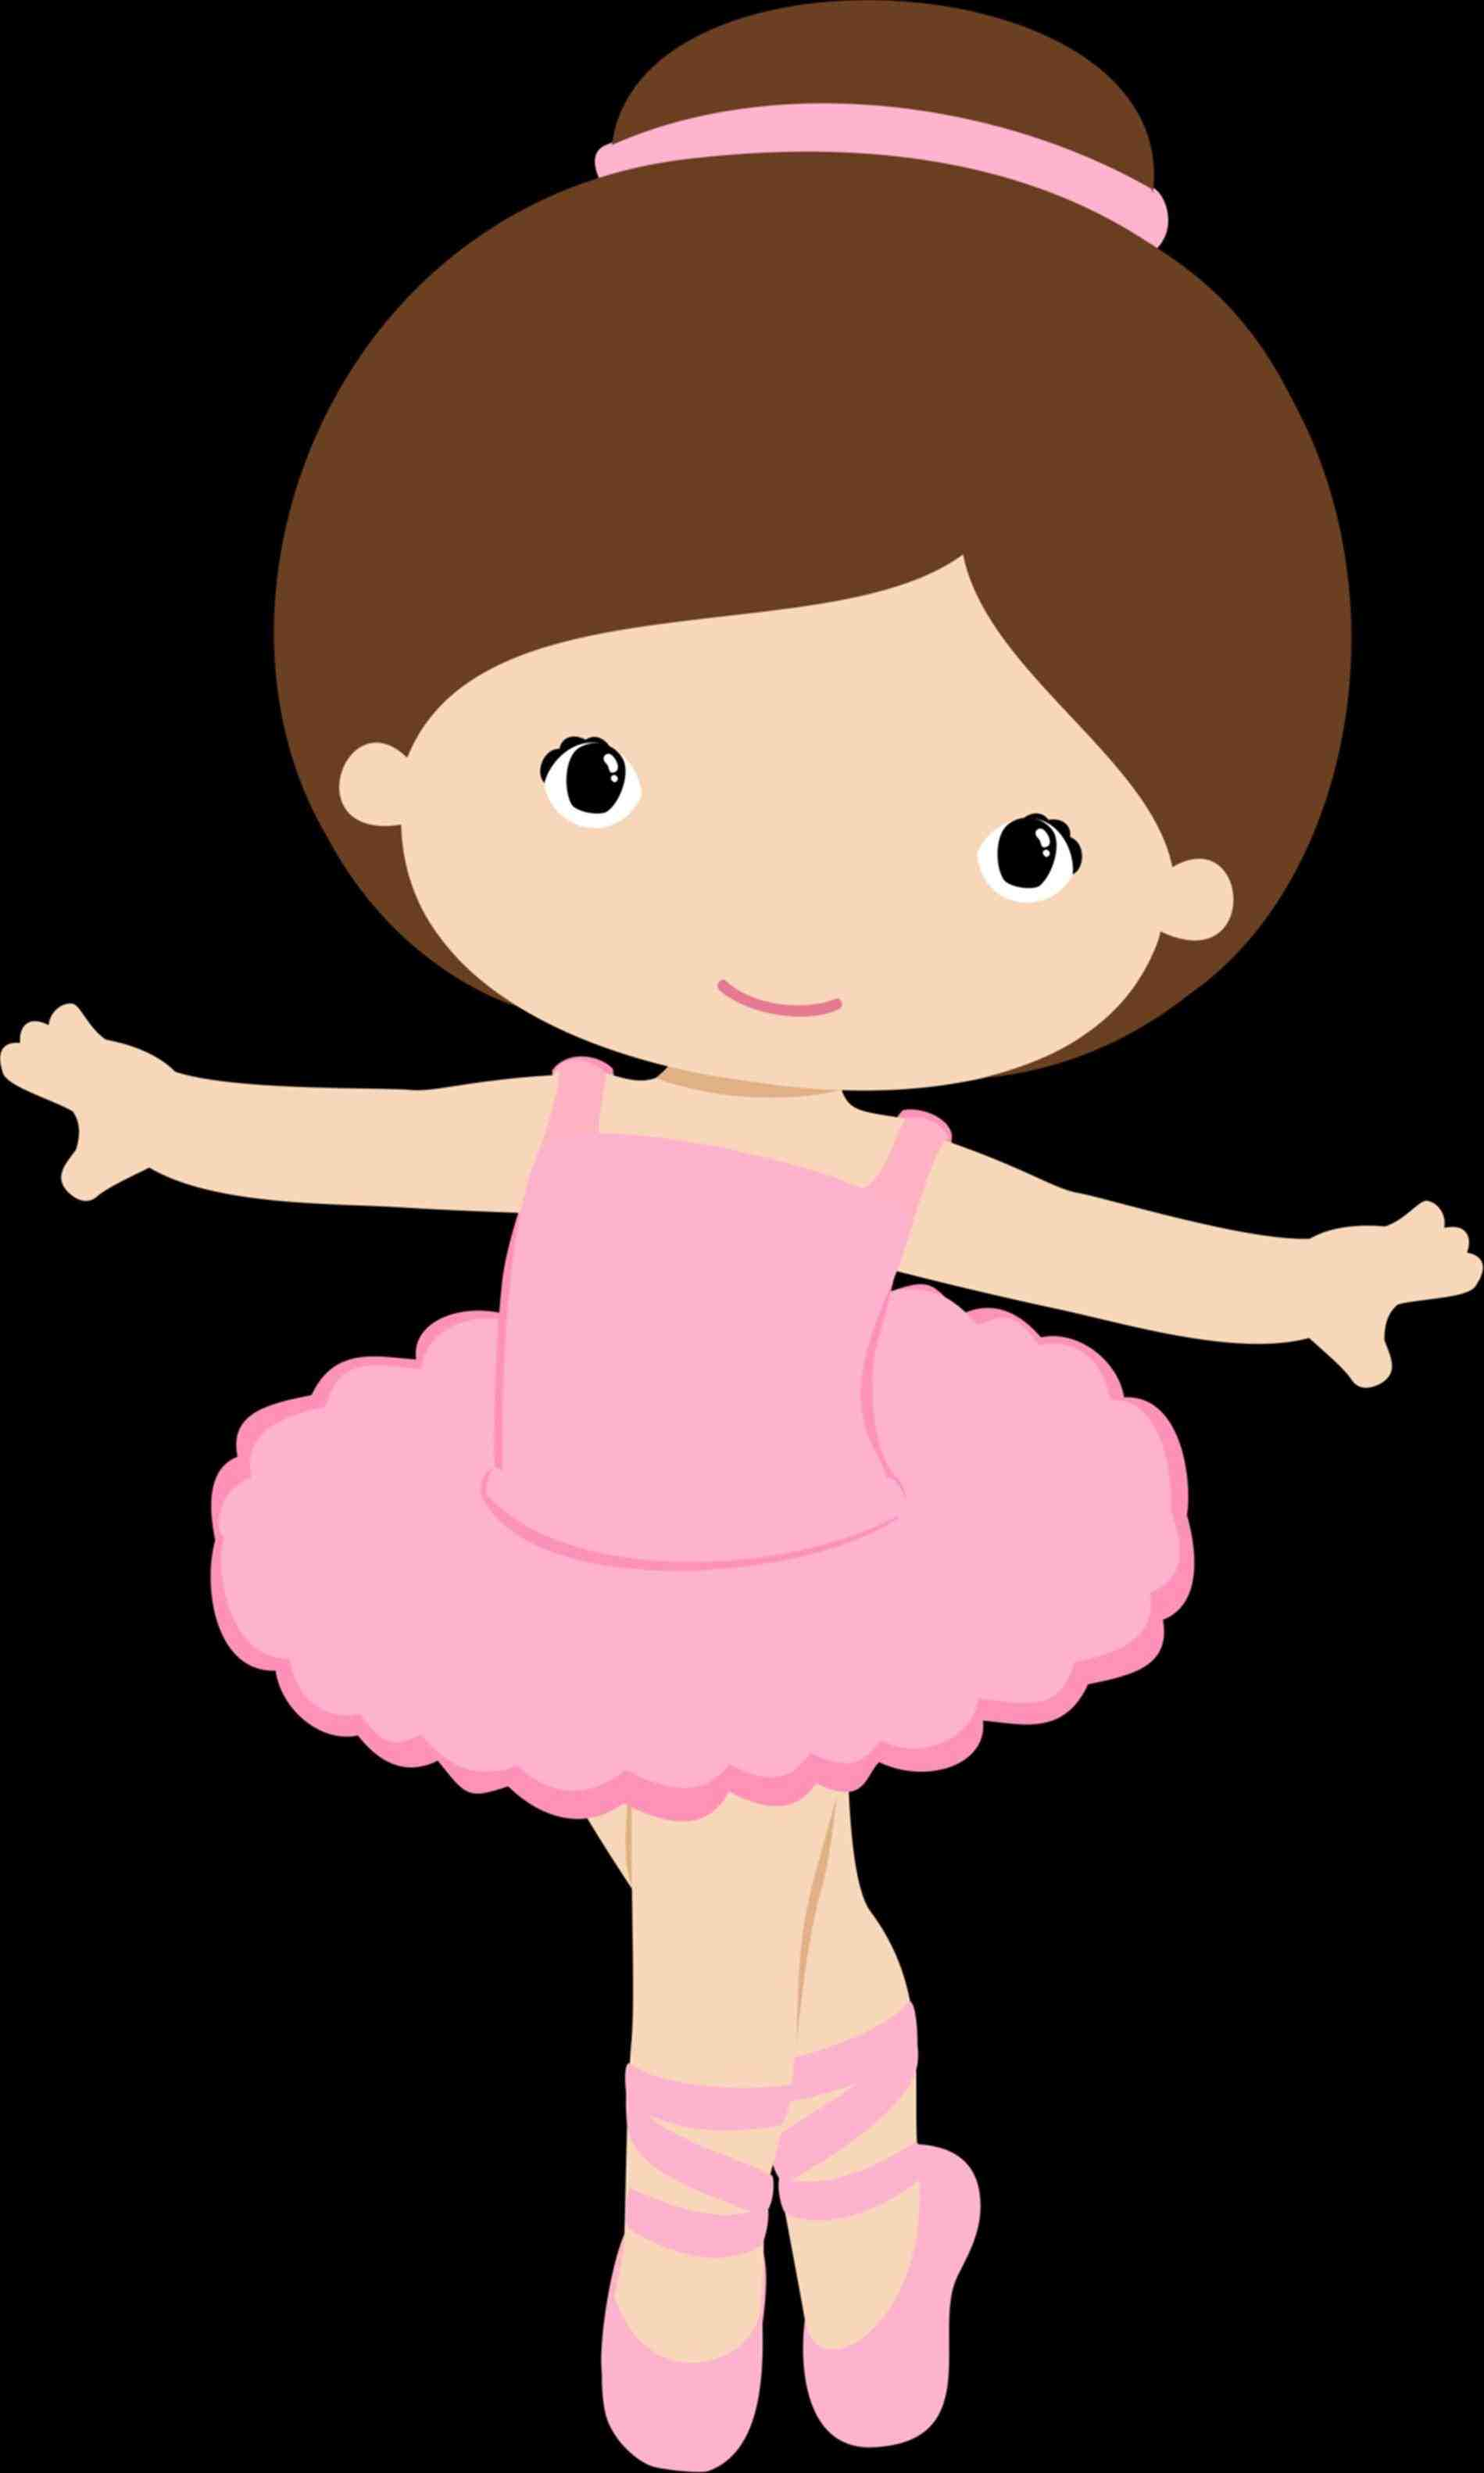 1899x3164 Pair Baby Ballerina Shoes Clipart Of Pink Ballet Slippers Free